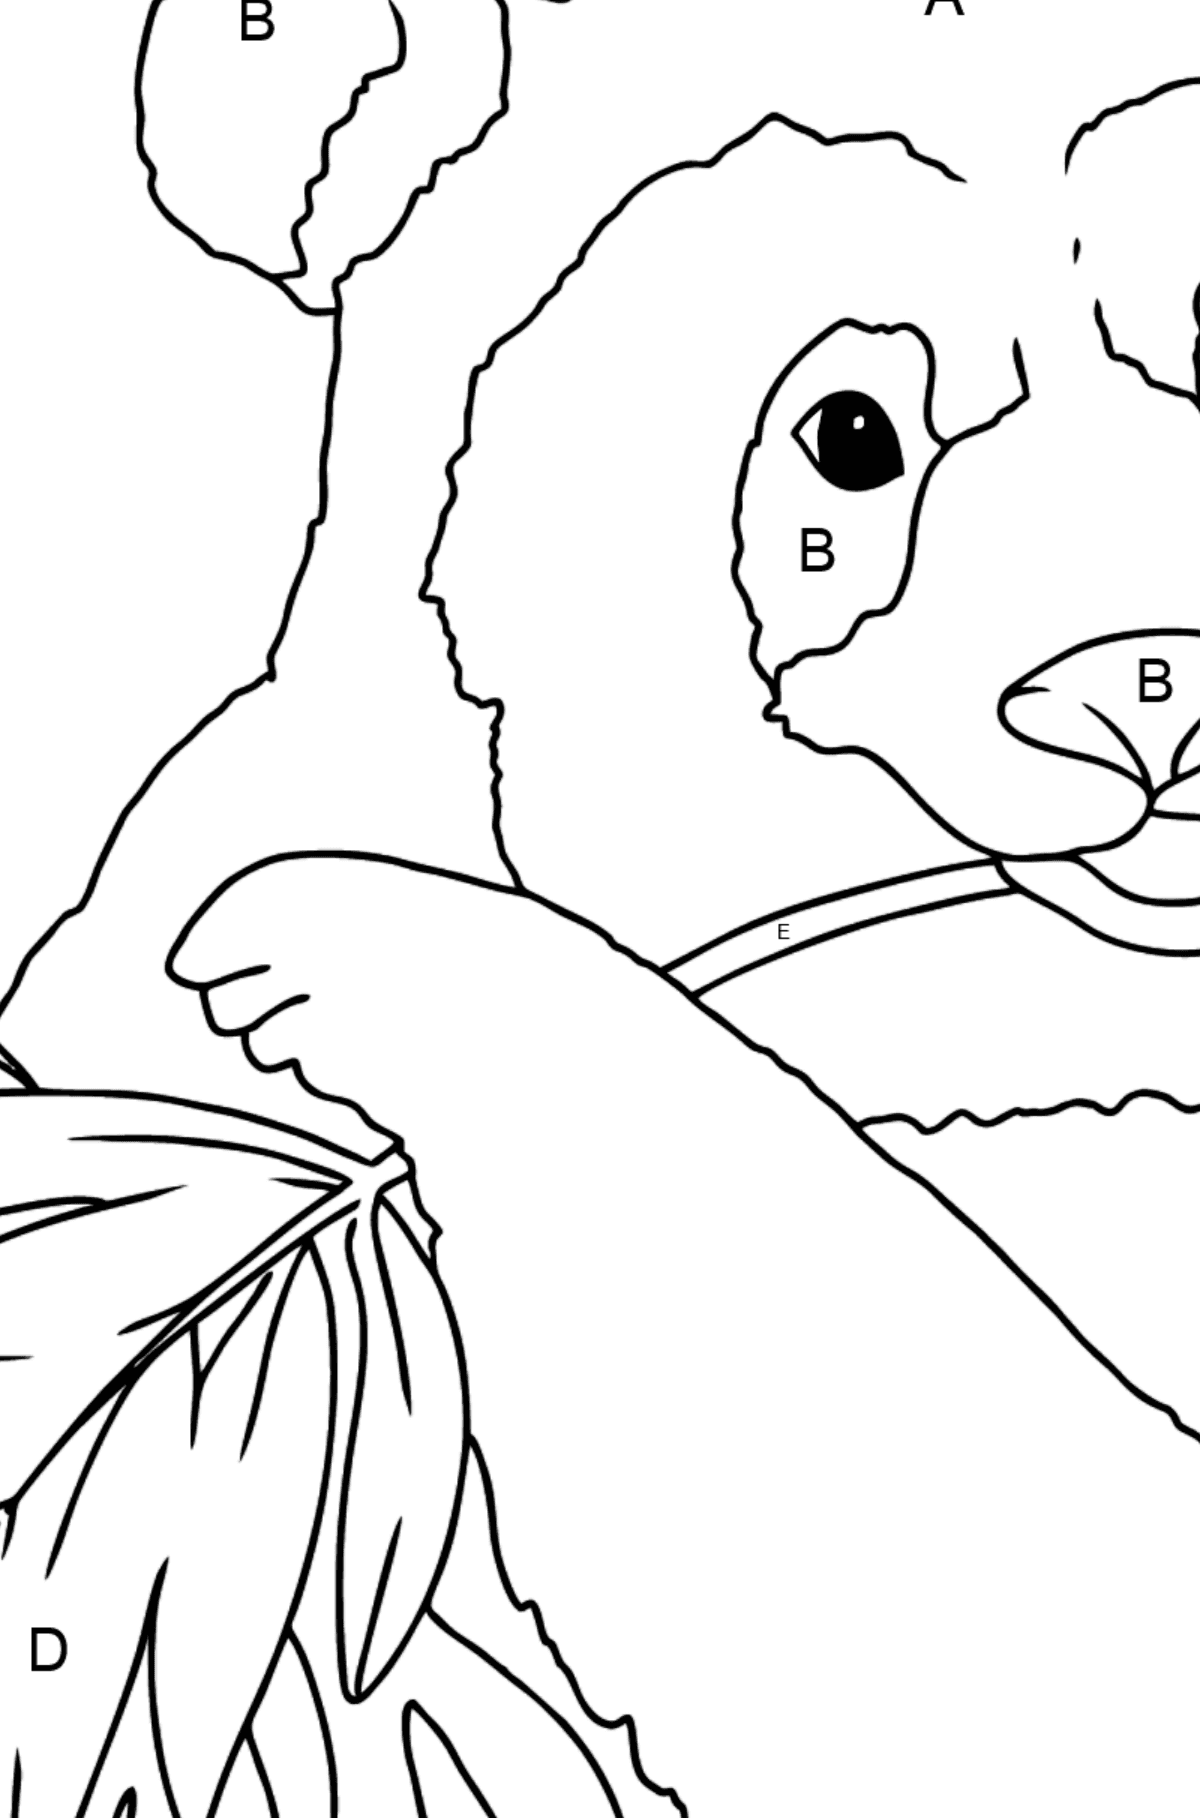 Coloring Page  - A Panda is Eating Leaves - Coloring by Letters for Kids